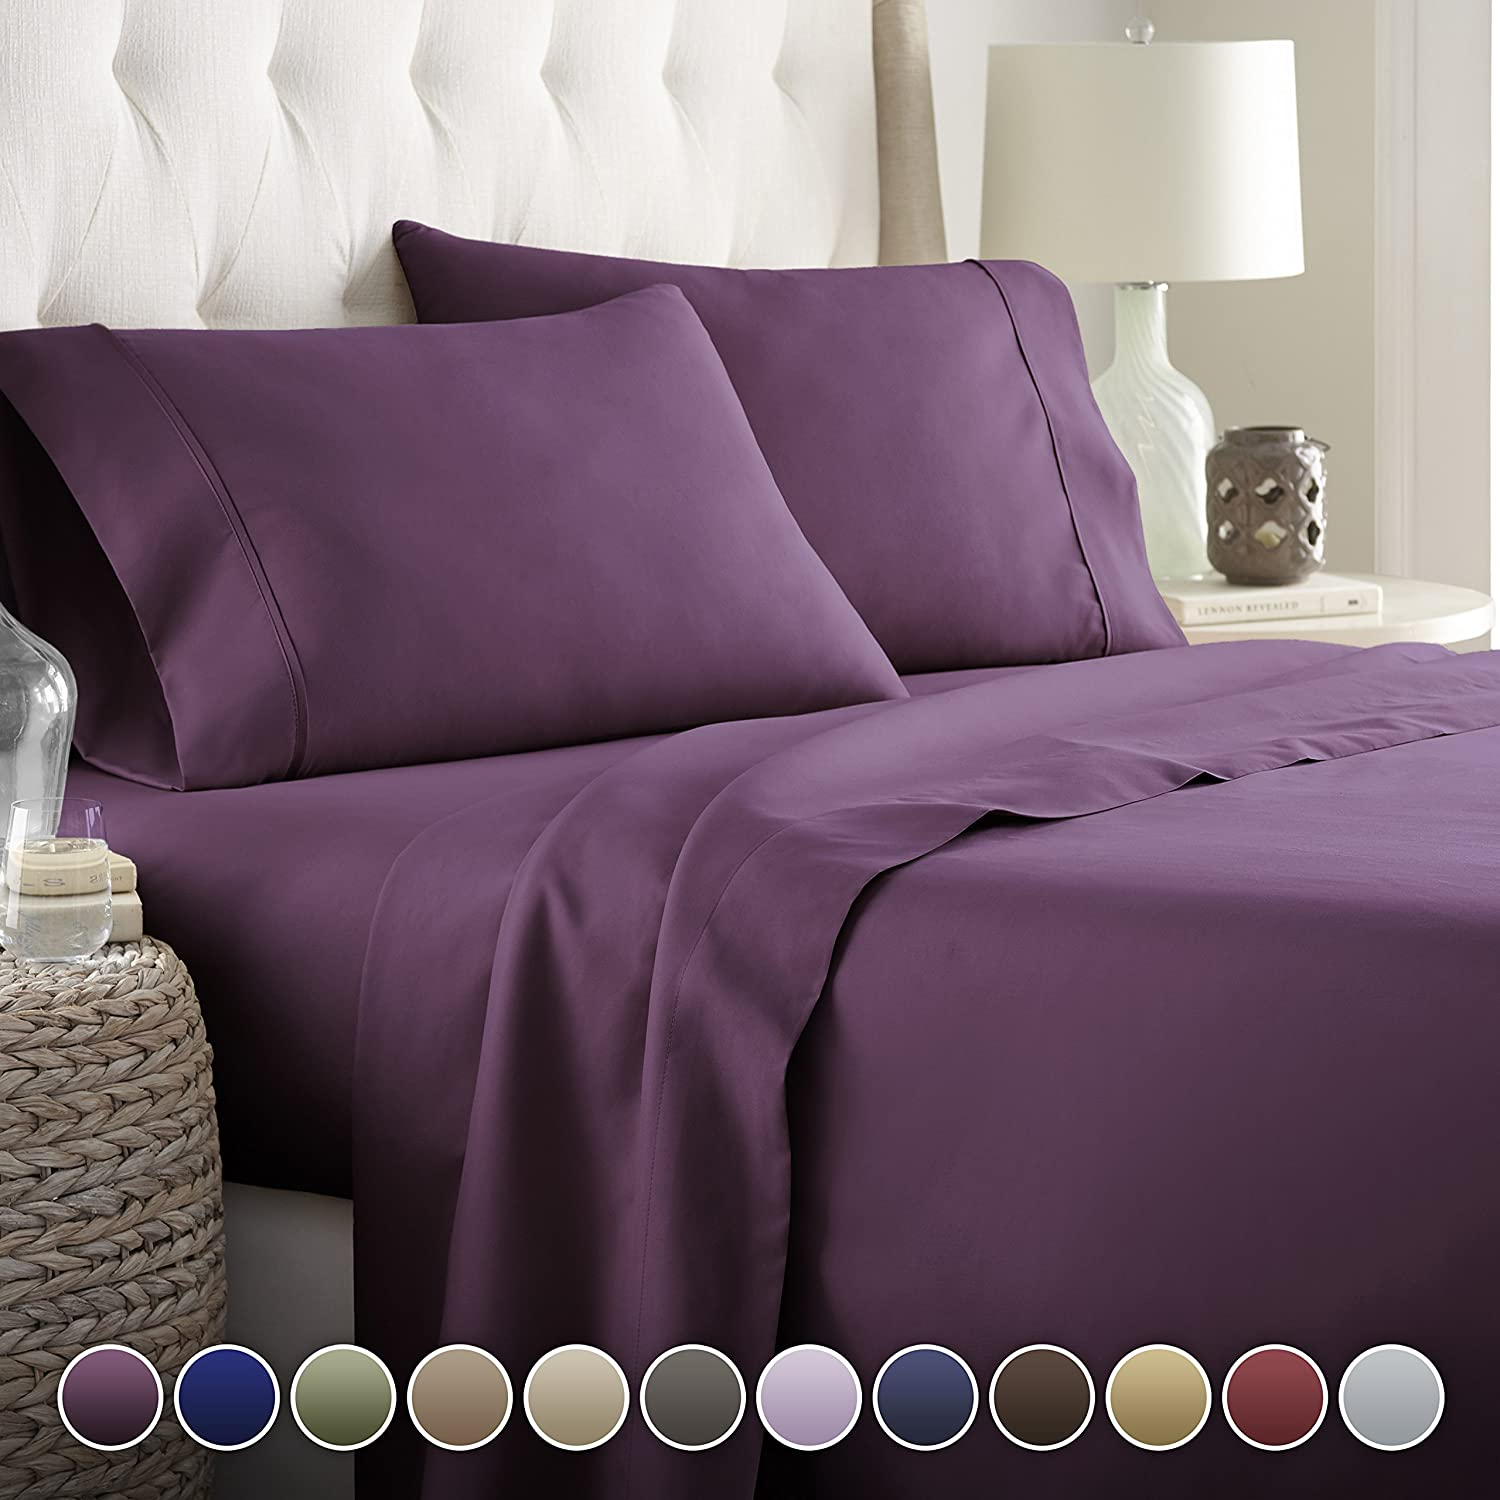 Hotel Luxury Bed Sheets Set- 1800 Series Platinum Collection-Deep Pocket, Wrinkle & Fade Resistant(Queen,Eggplant): Home & Kitchen